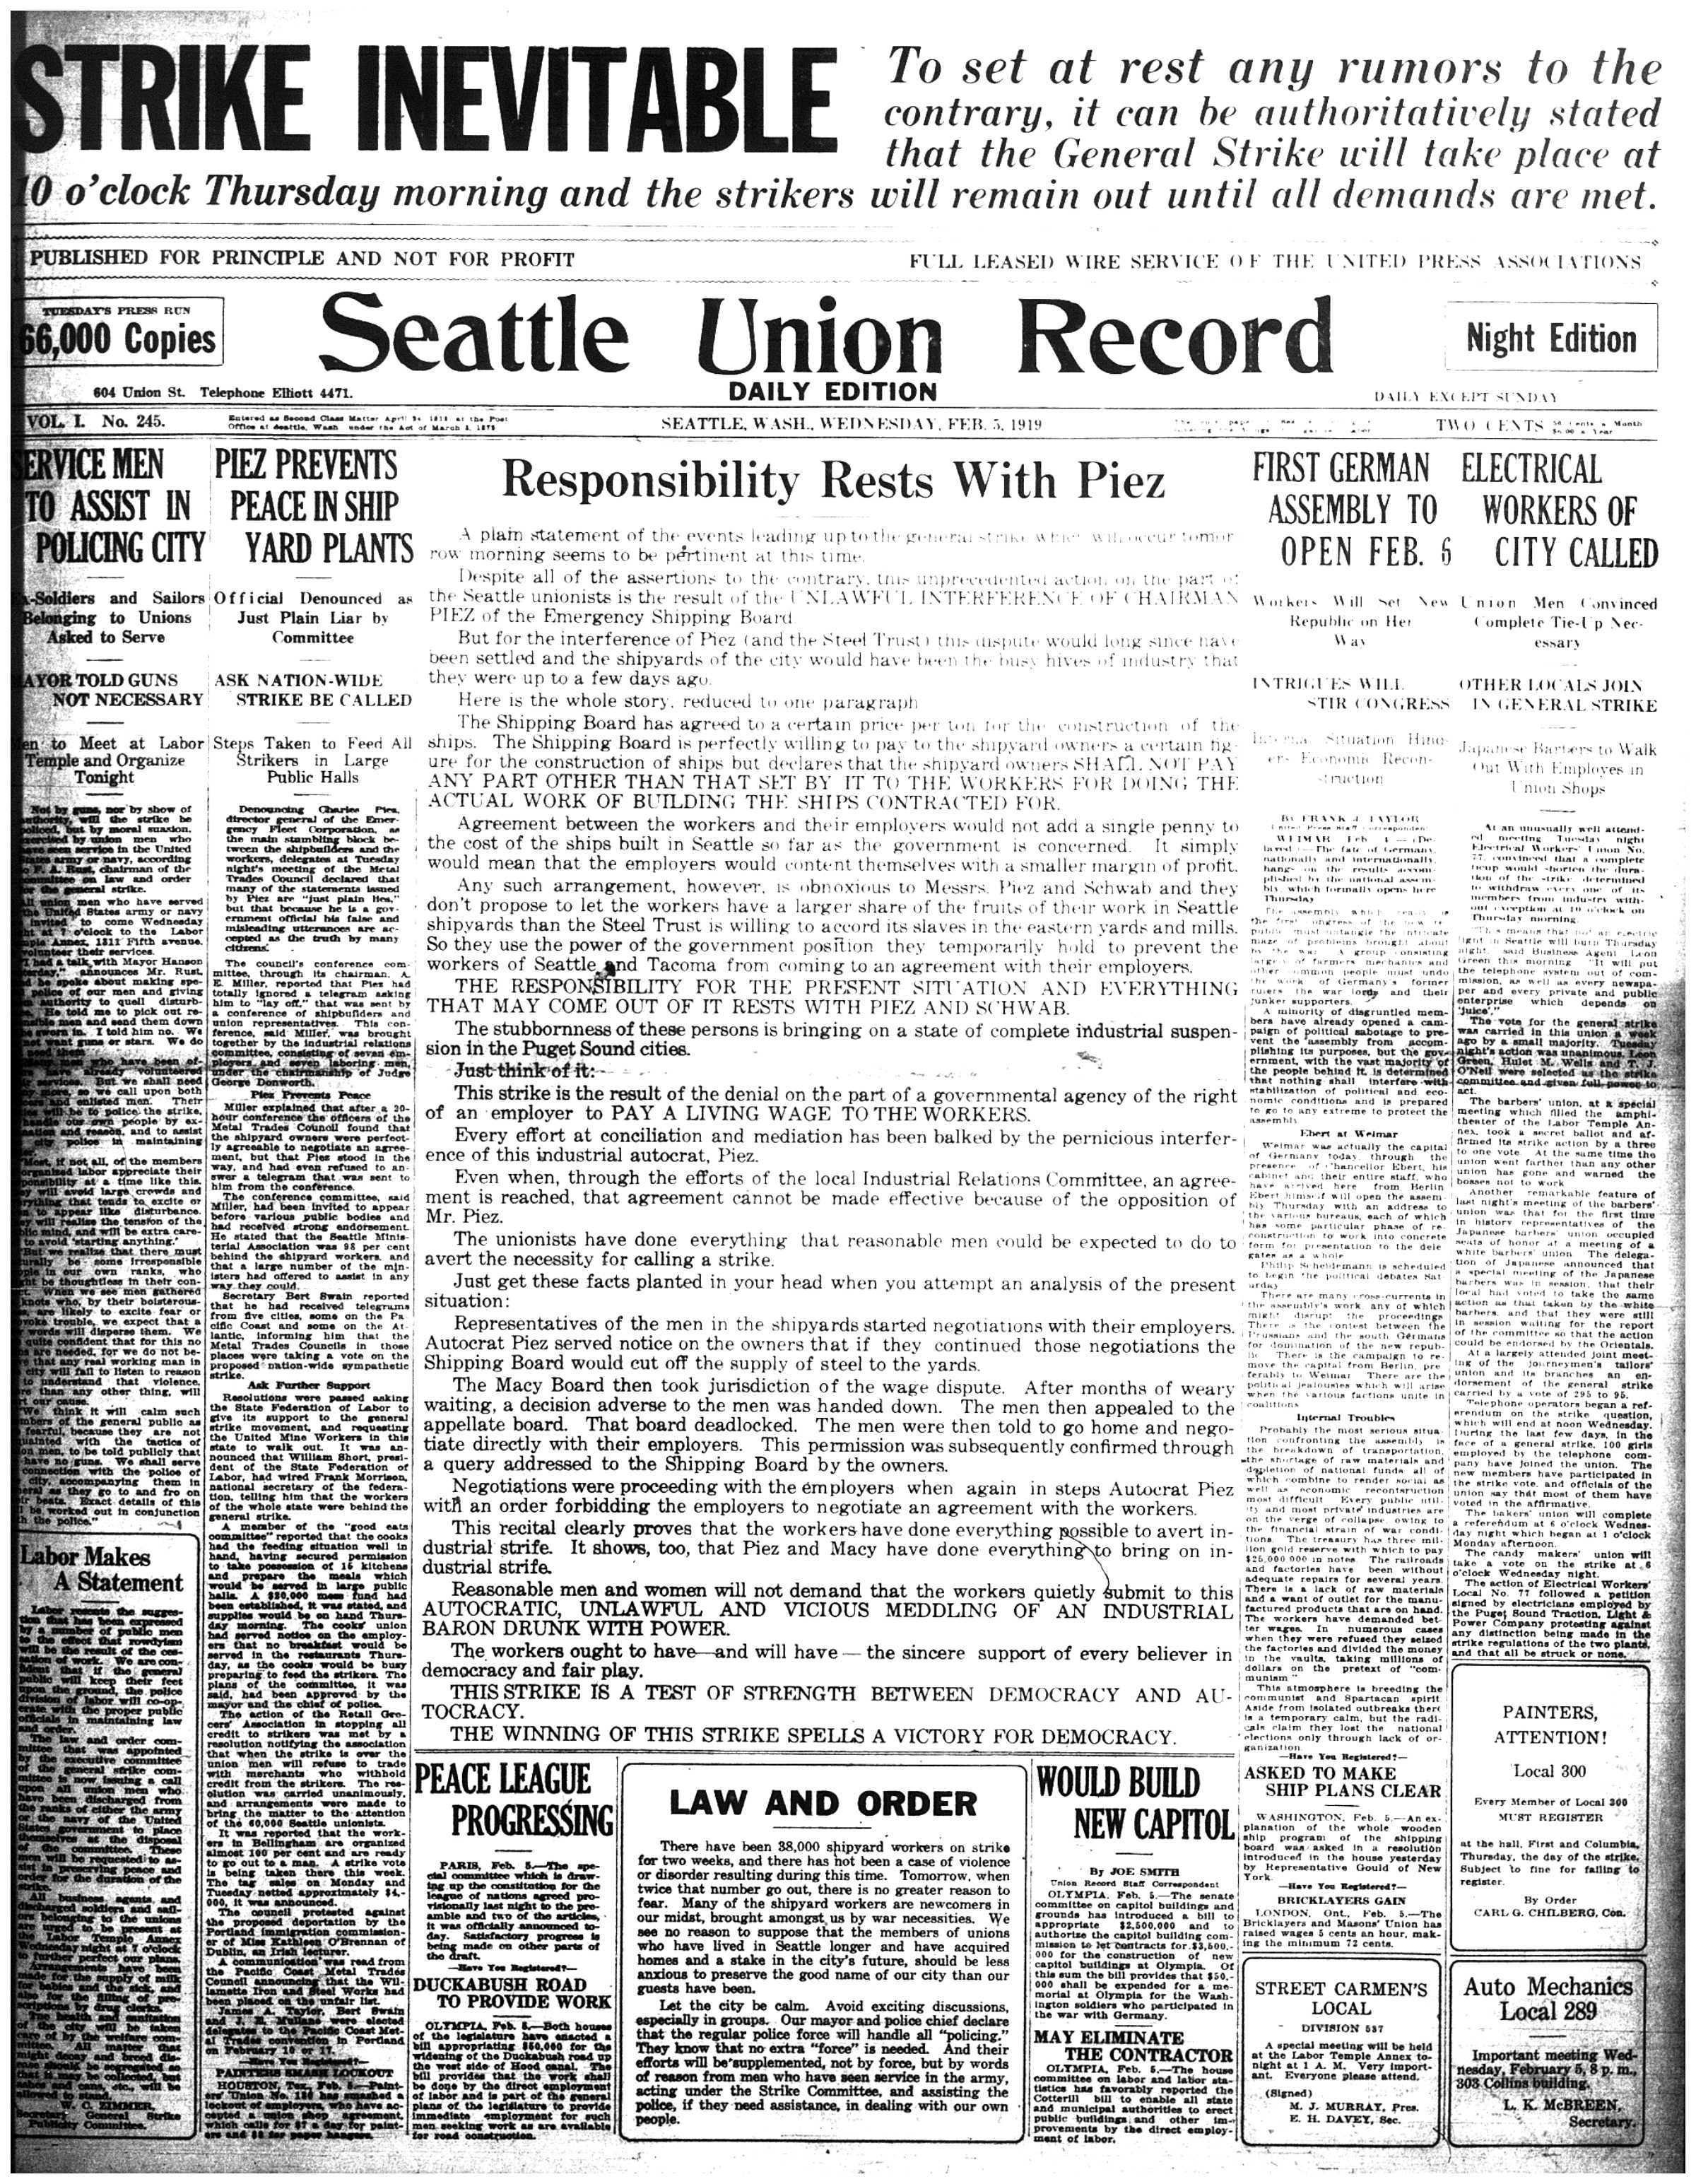 Seattle General Strike: News Coverage